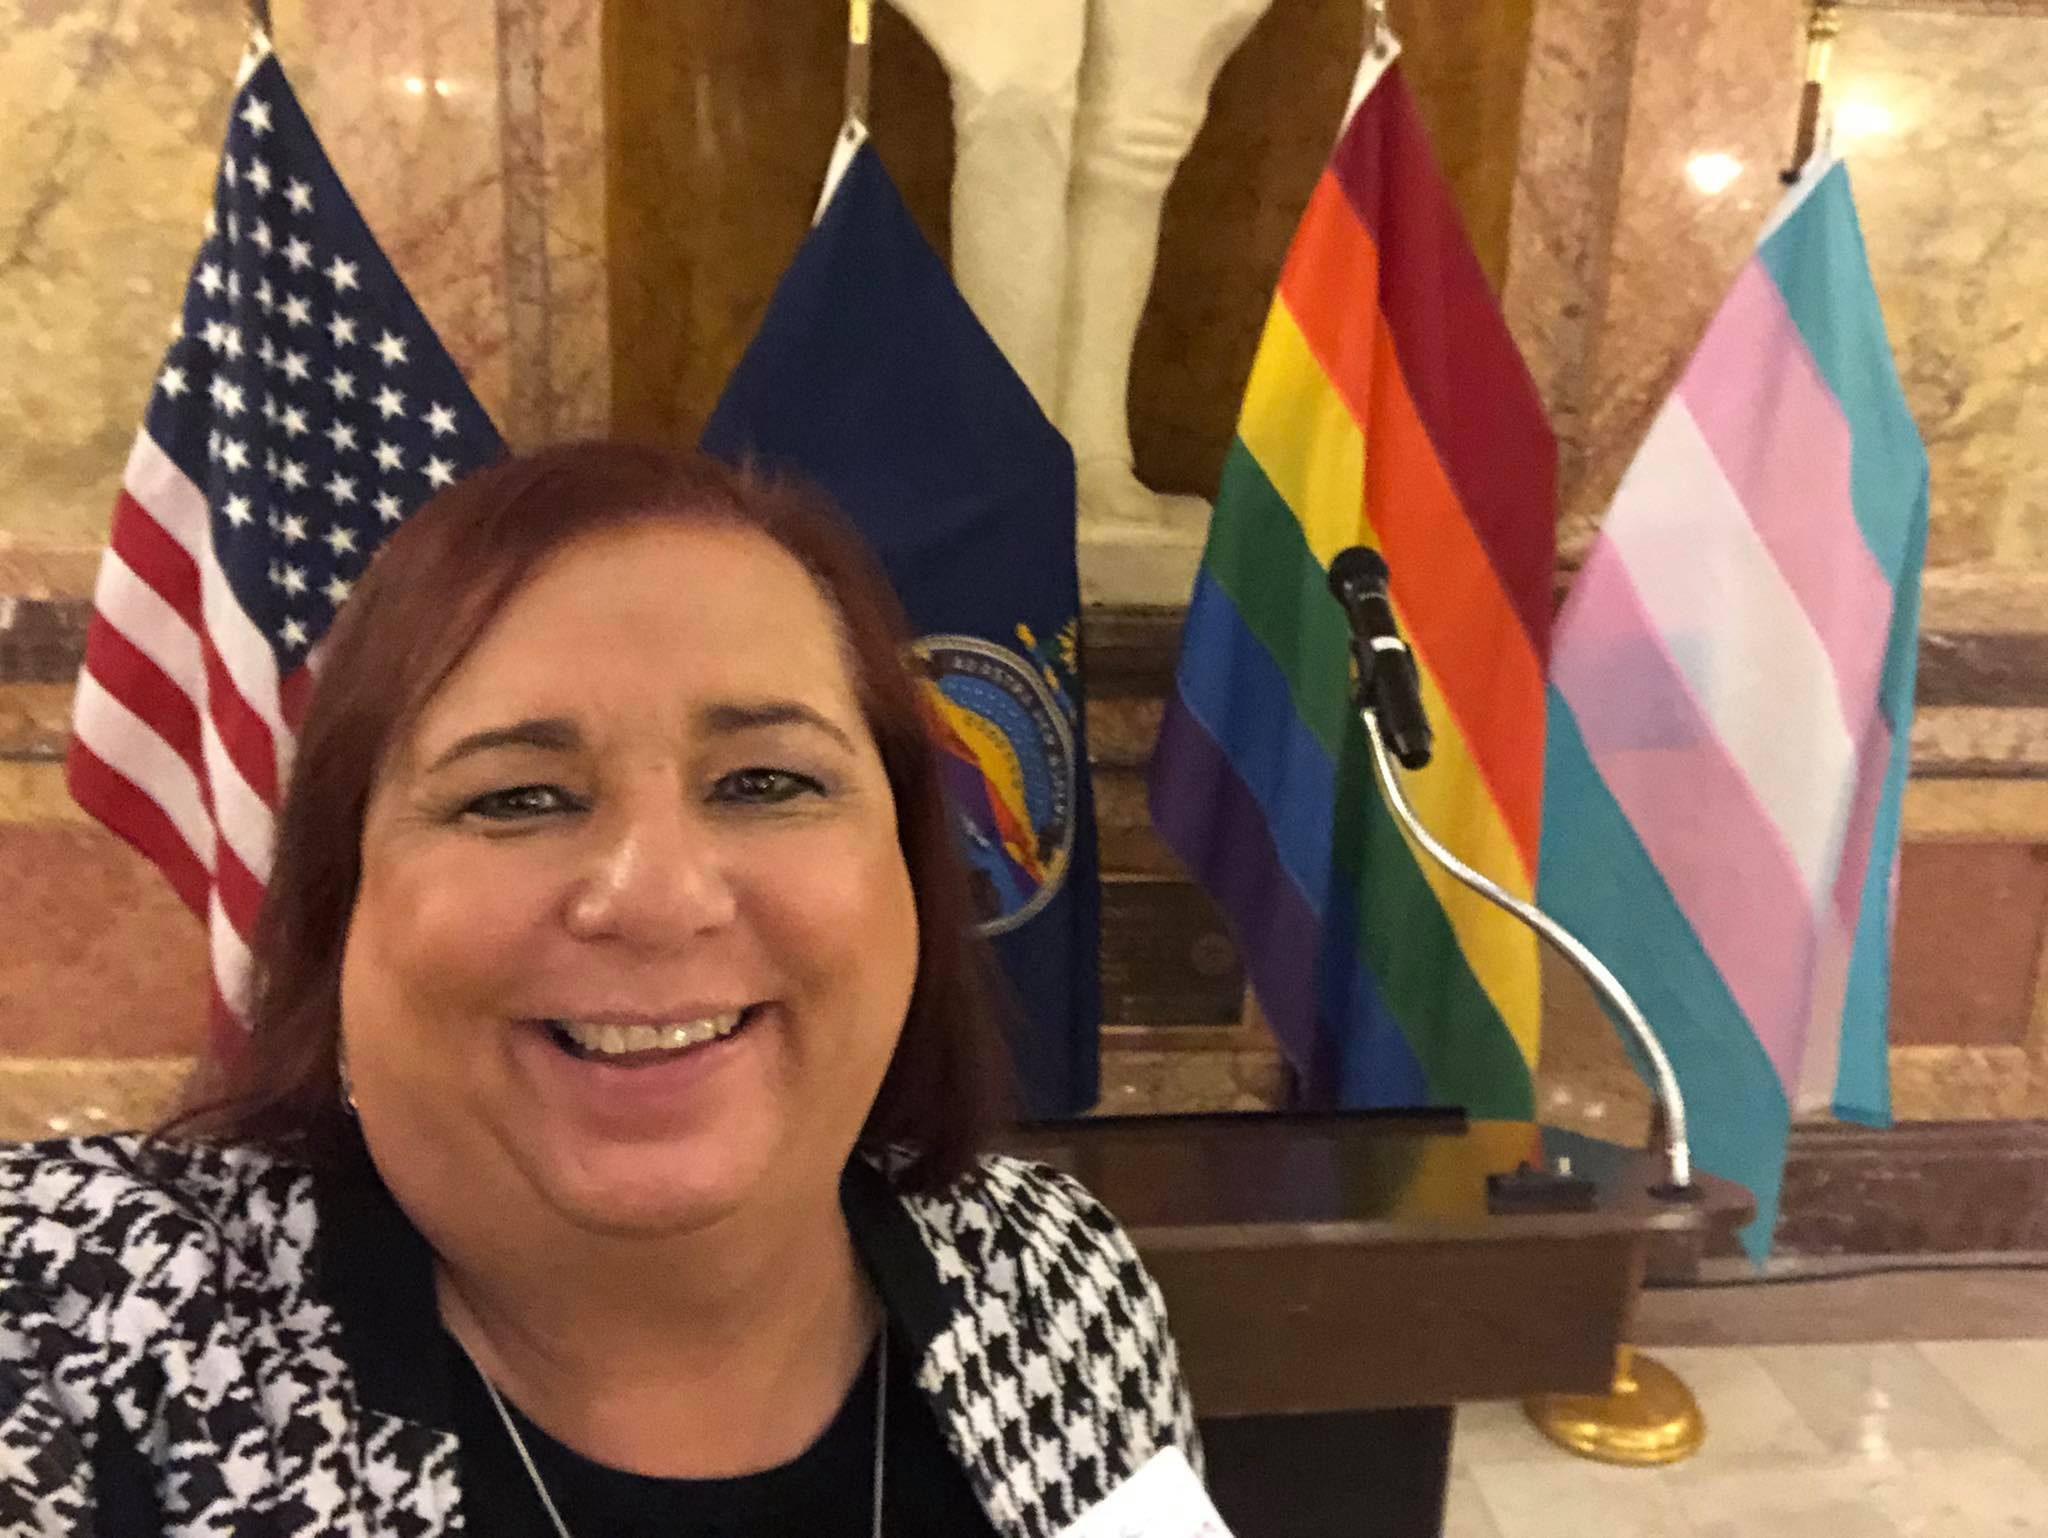 Stephanie Byer is the first Native American trans woman elected to office anywhere in the United States